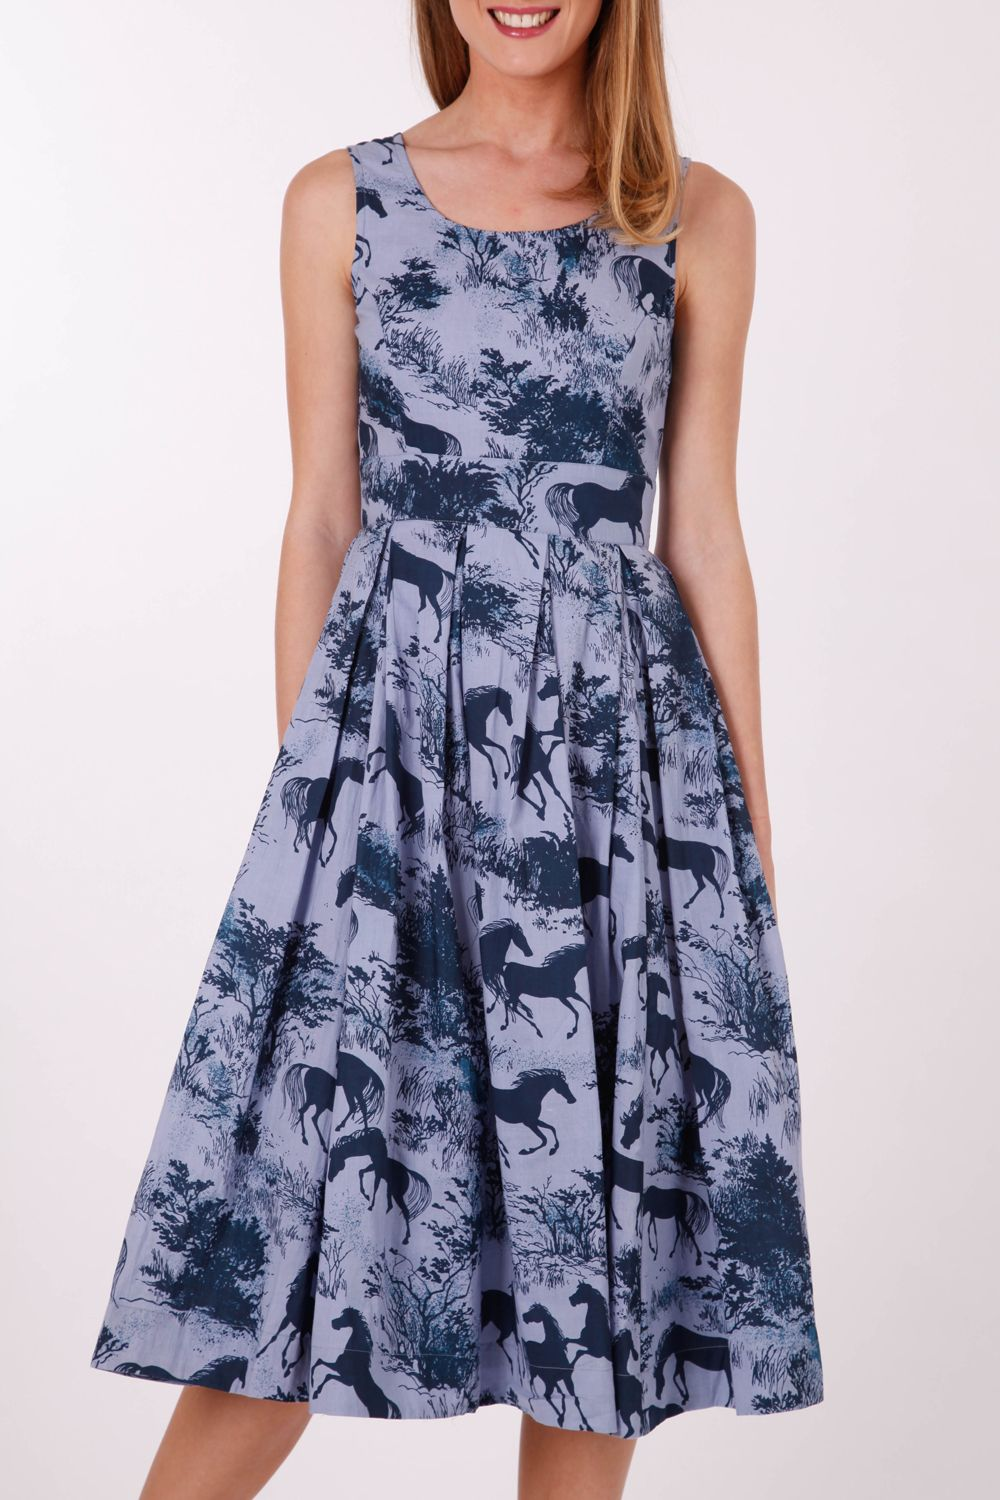 31++ Fit and flare dress knee length ideas in 2021